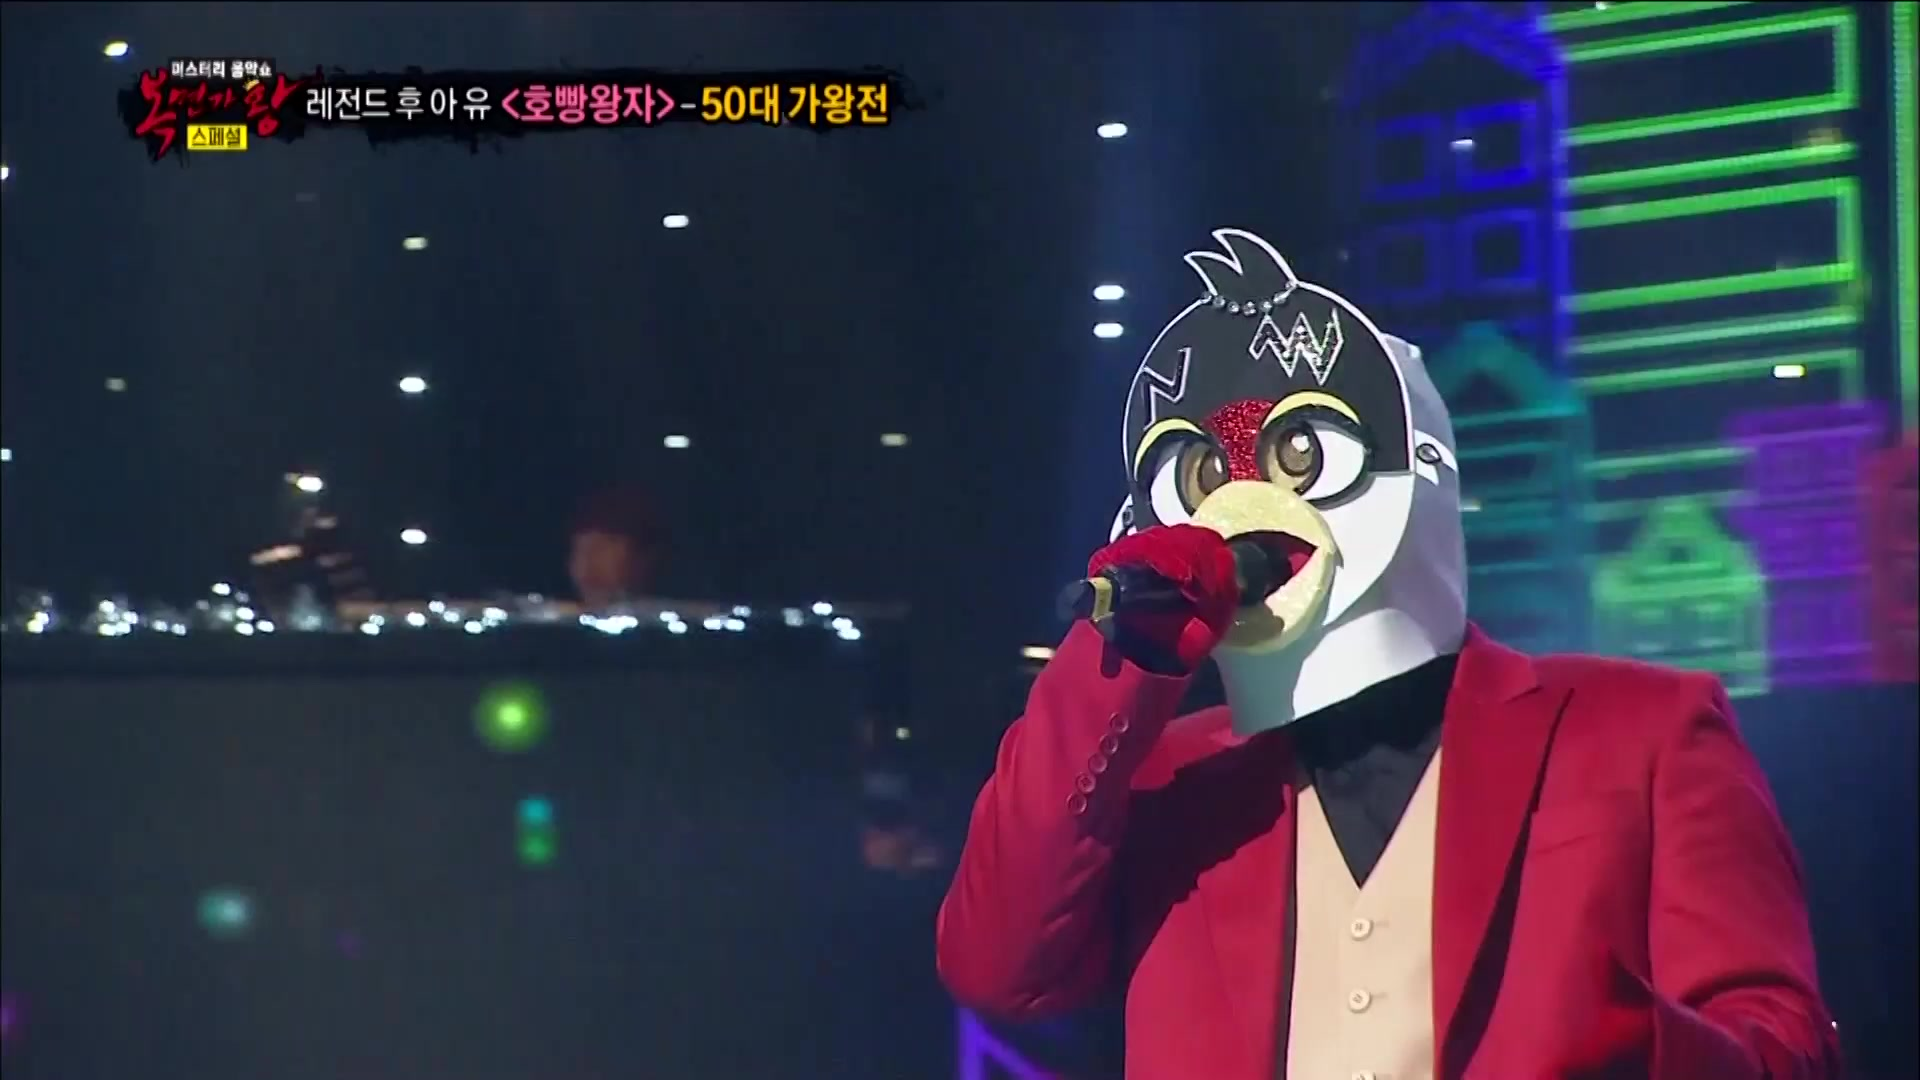 The King of Mask Singer Episode 0: Special 11/5/2017